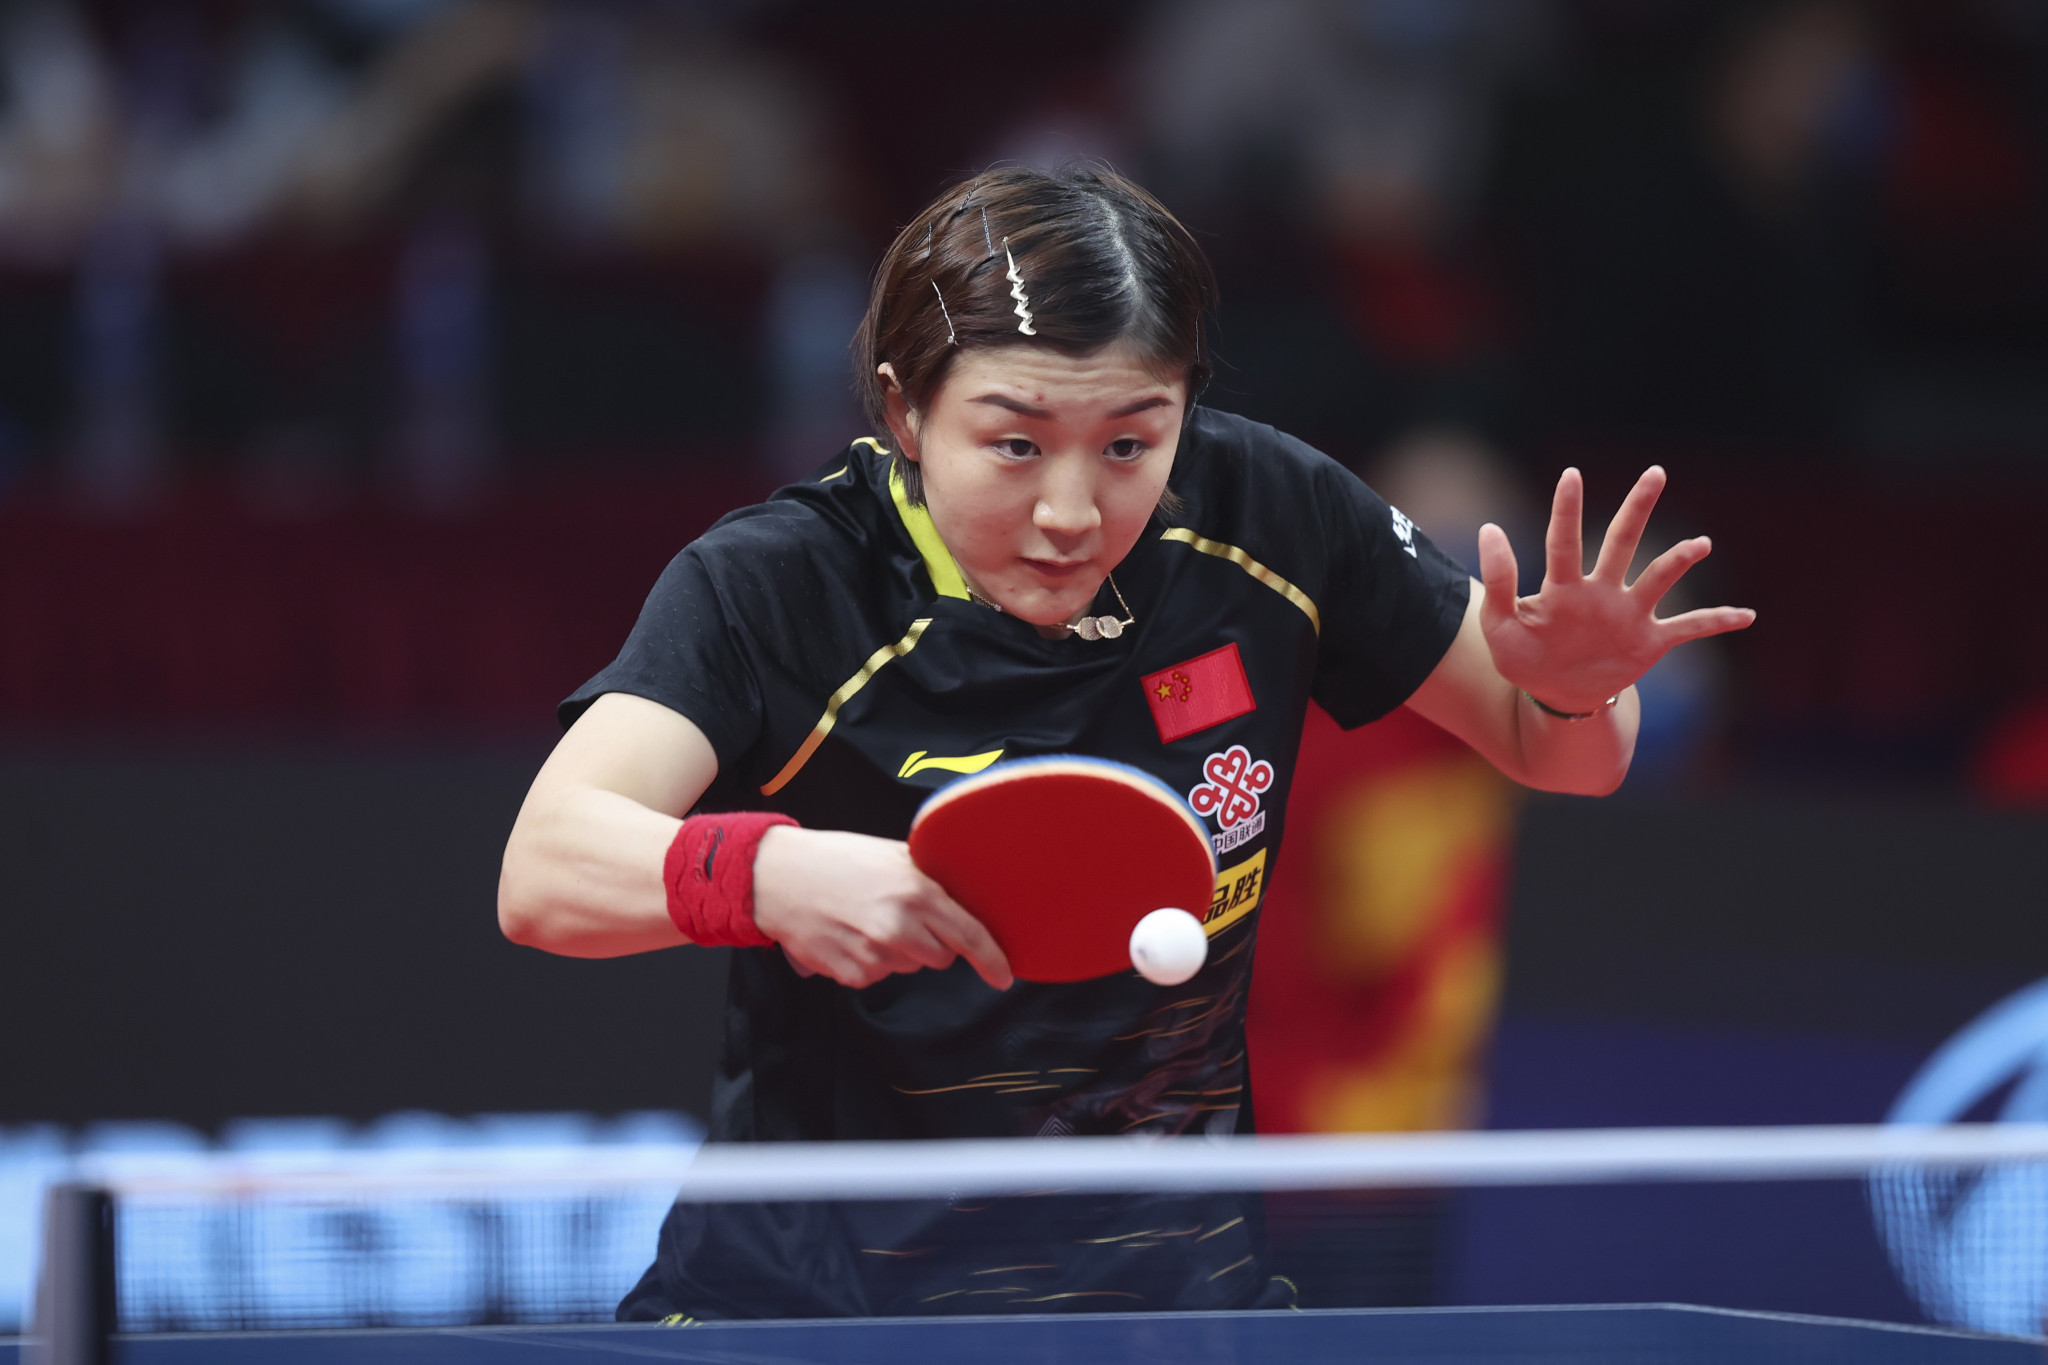 Macau set to host WTT promotional showcase featuring 32 table tennis stars